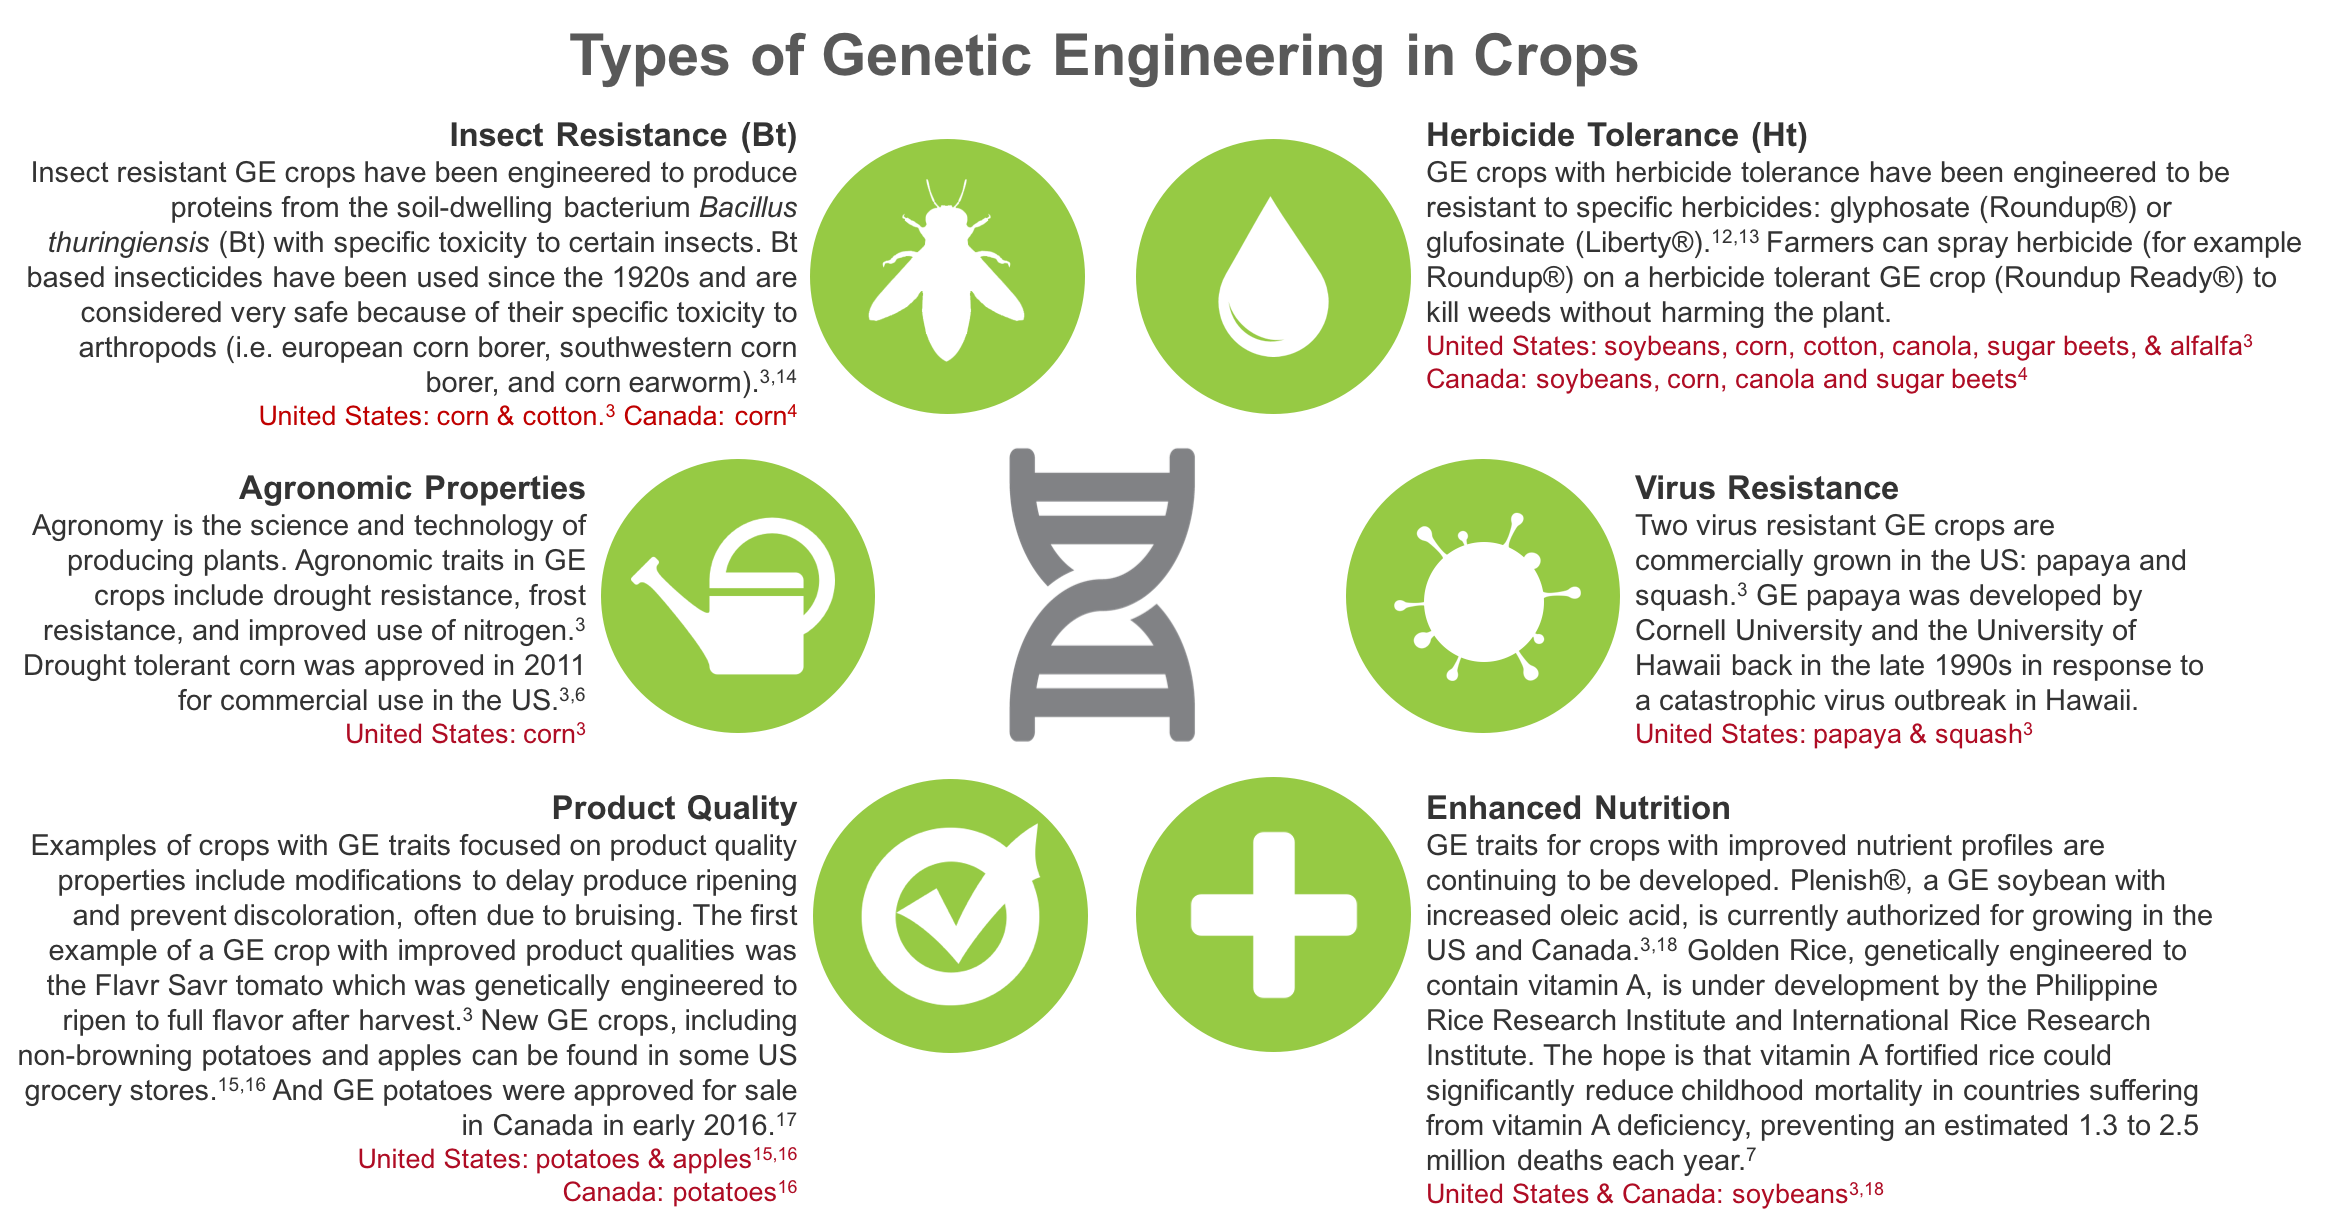 Genetic Engineering Traits in Food Crops: Insect Resistance, Herbicide Tolerance, Agronomic Properties, Virus Resistance, Product Quality, and Enhanced Nutrition. www.feedthemwisely.com